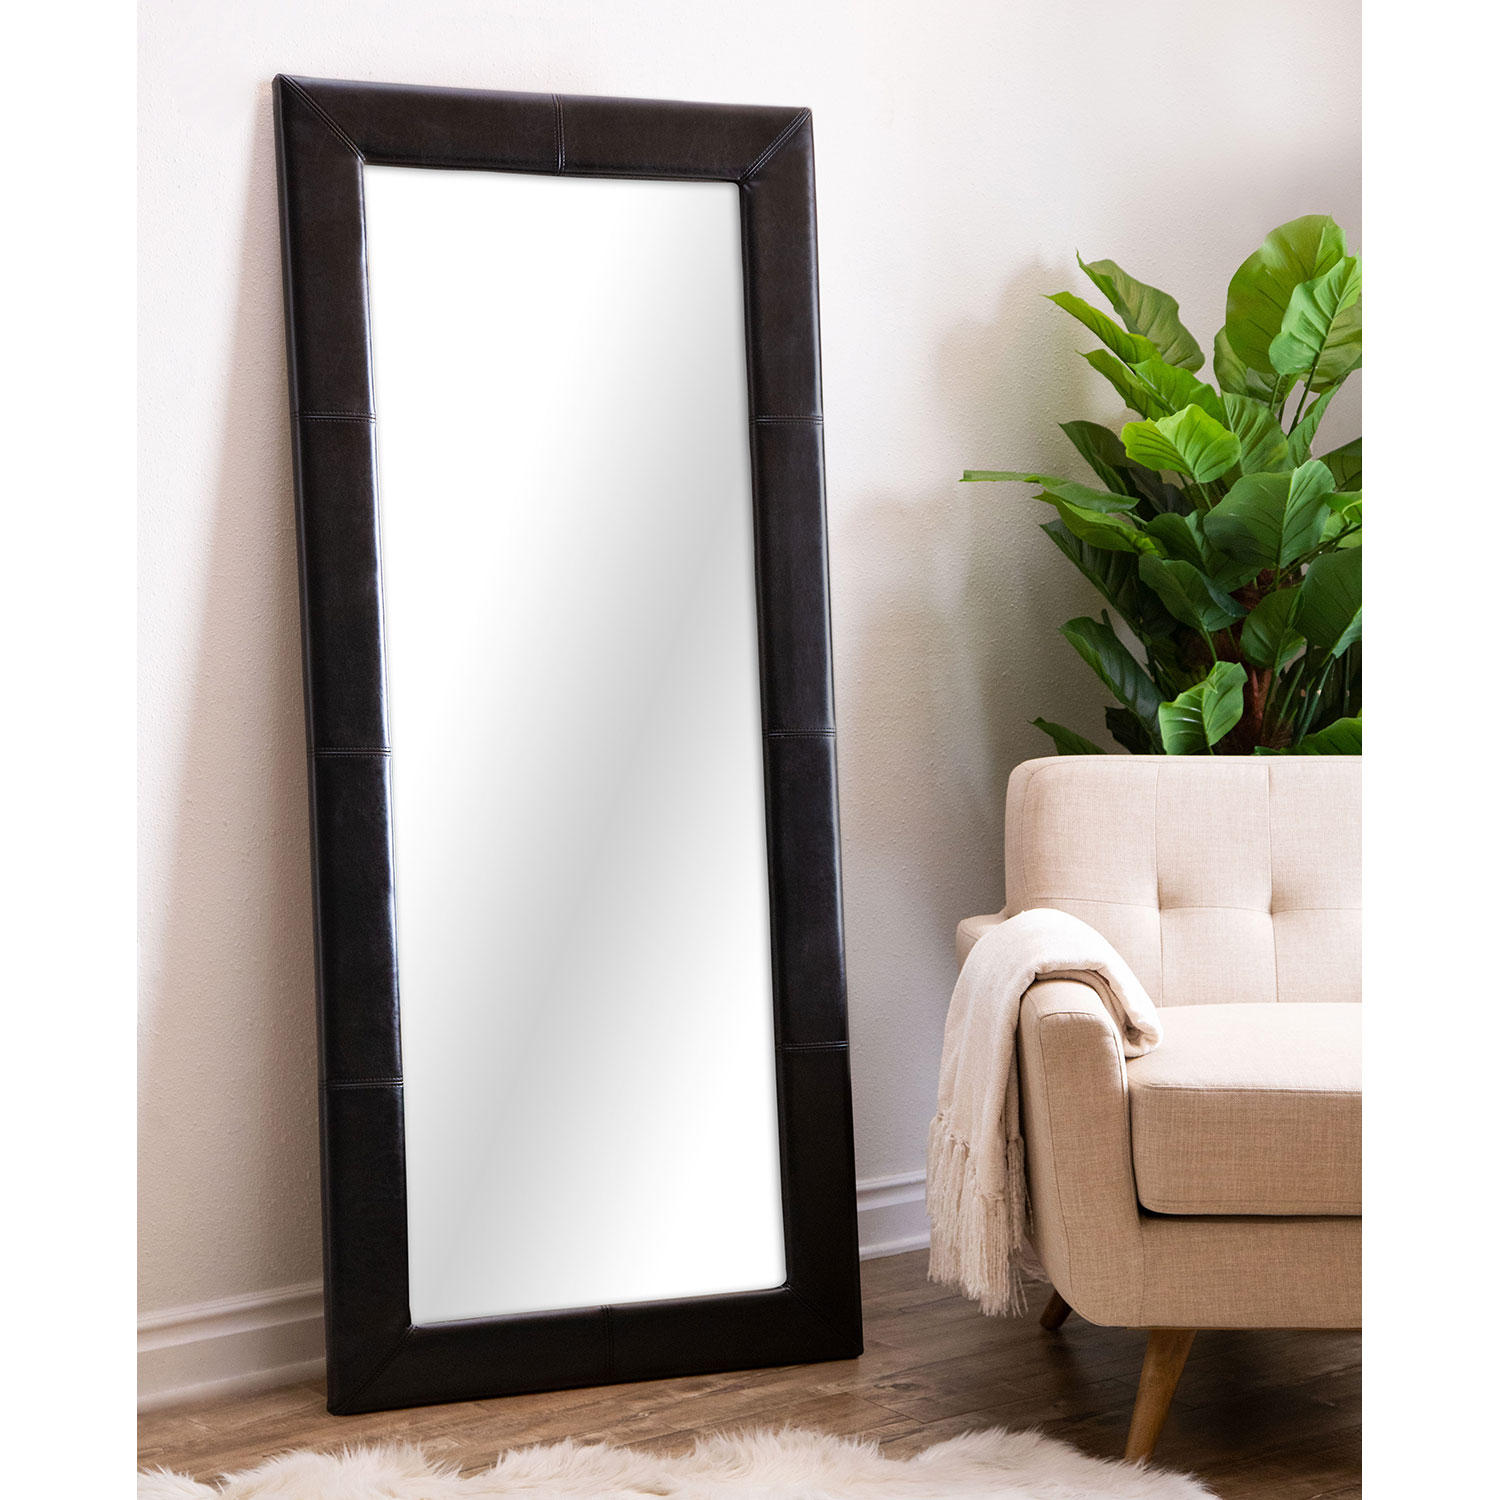 Abbyson Living Emma Full-Length Floor Mirror